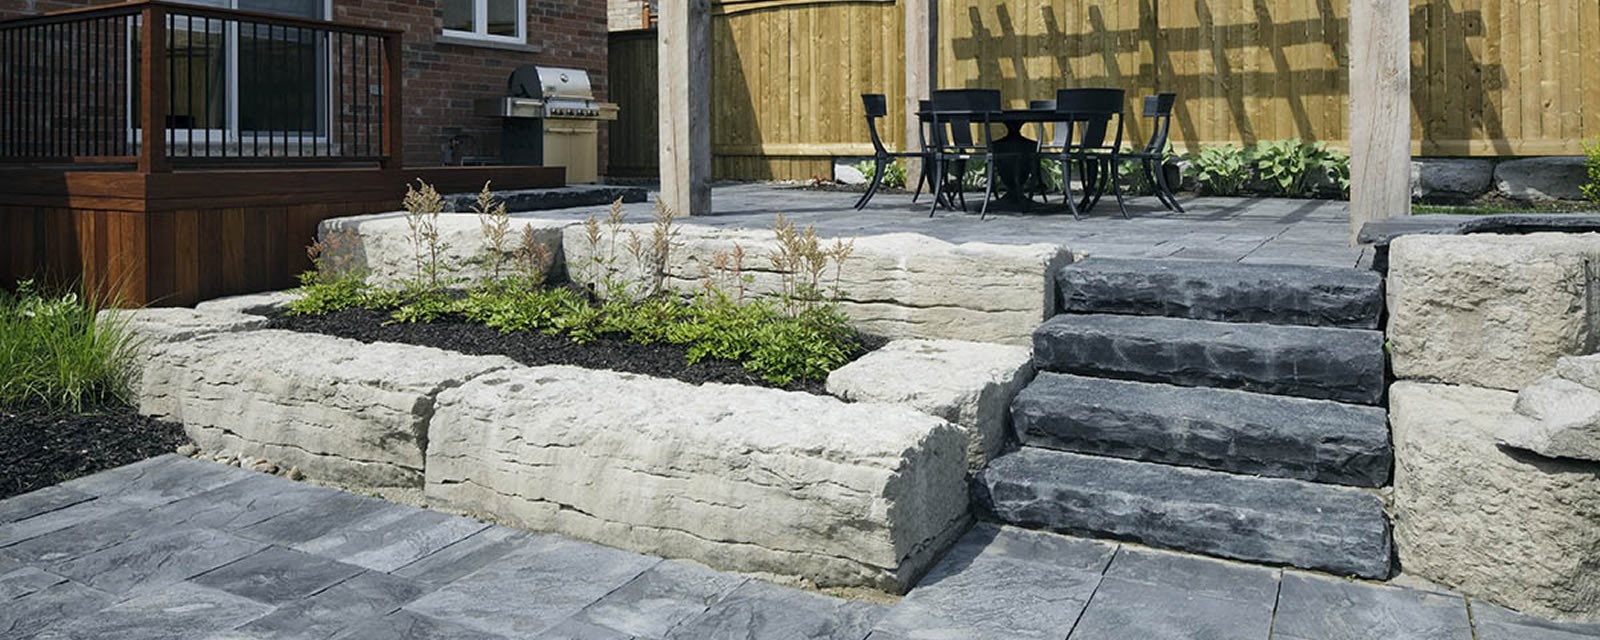 Owen Sound-Pebbletop®-Rockface Steps